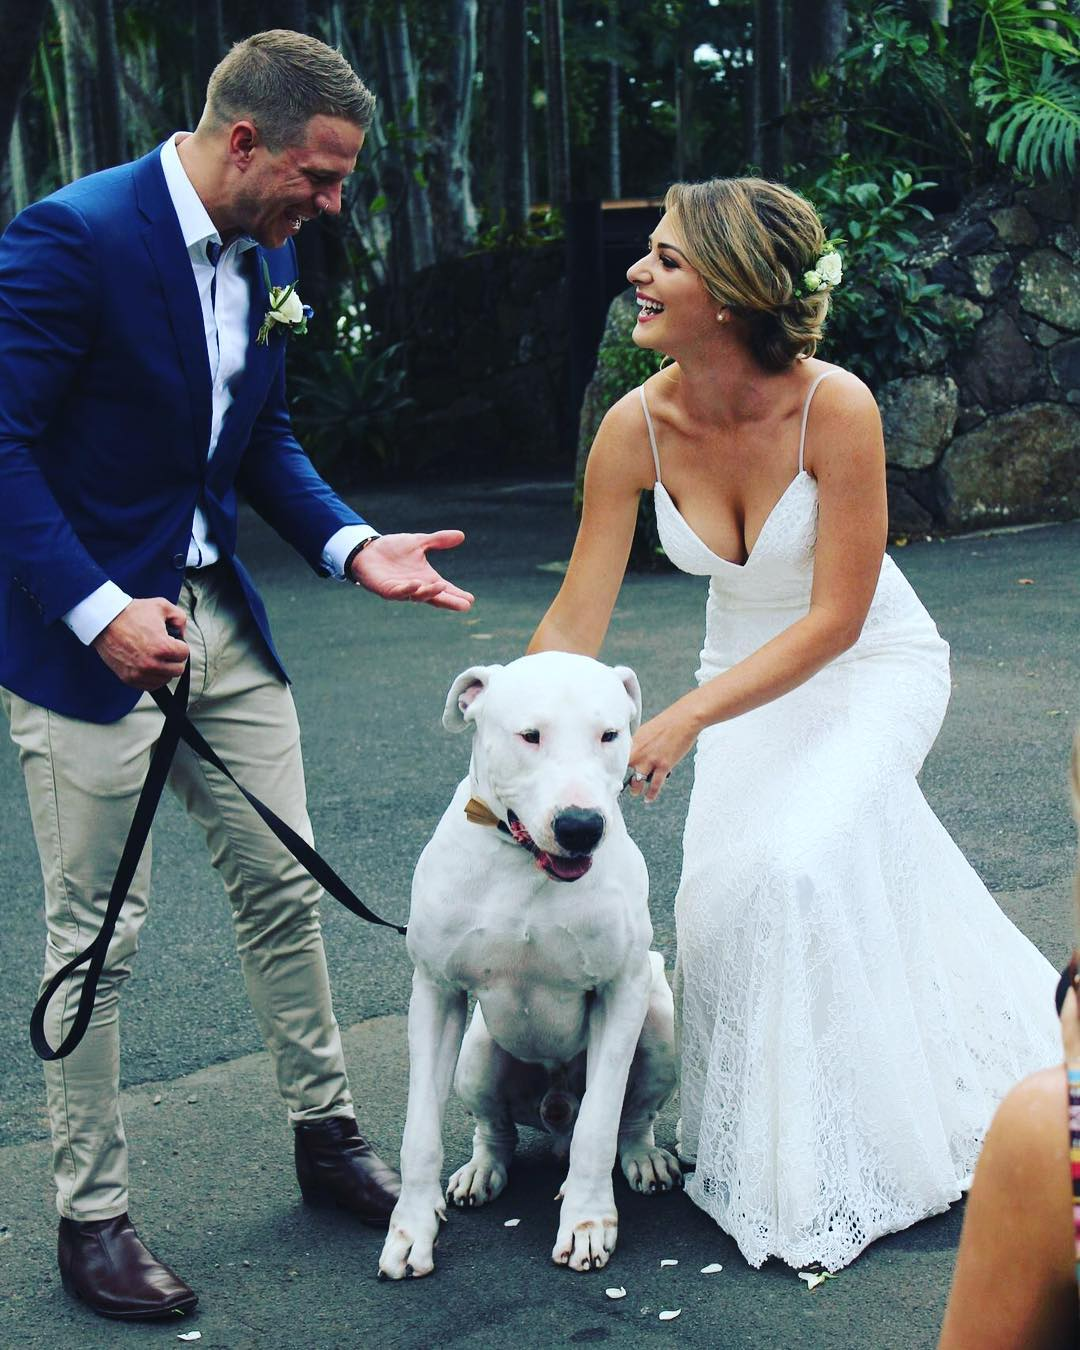 Bride and groom surprised by their pet dog at wedding ceremony